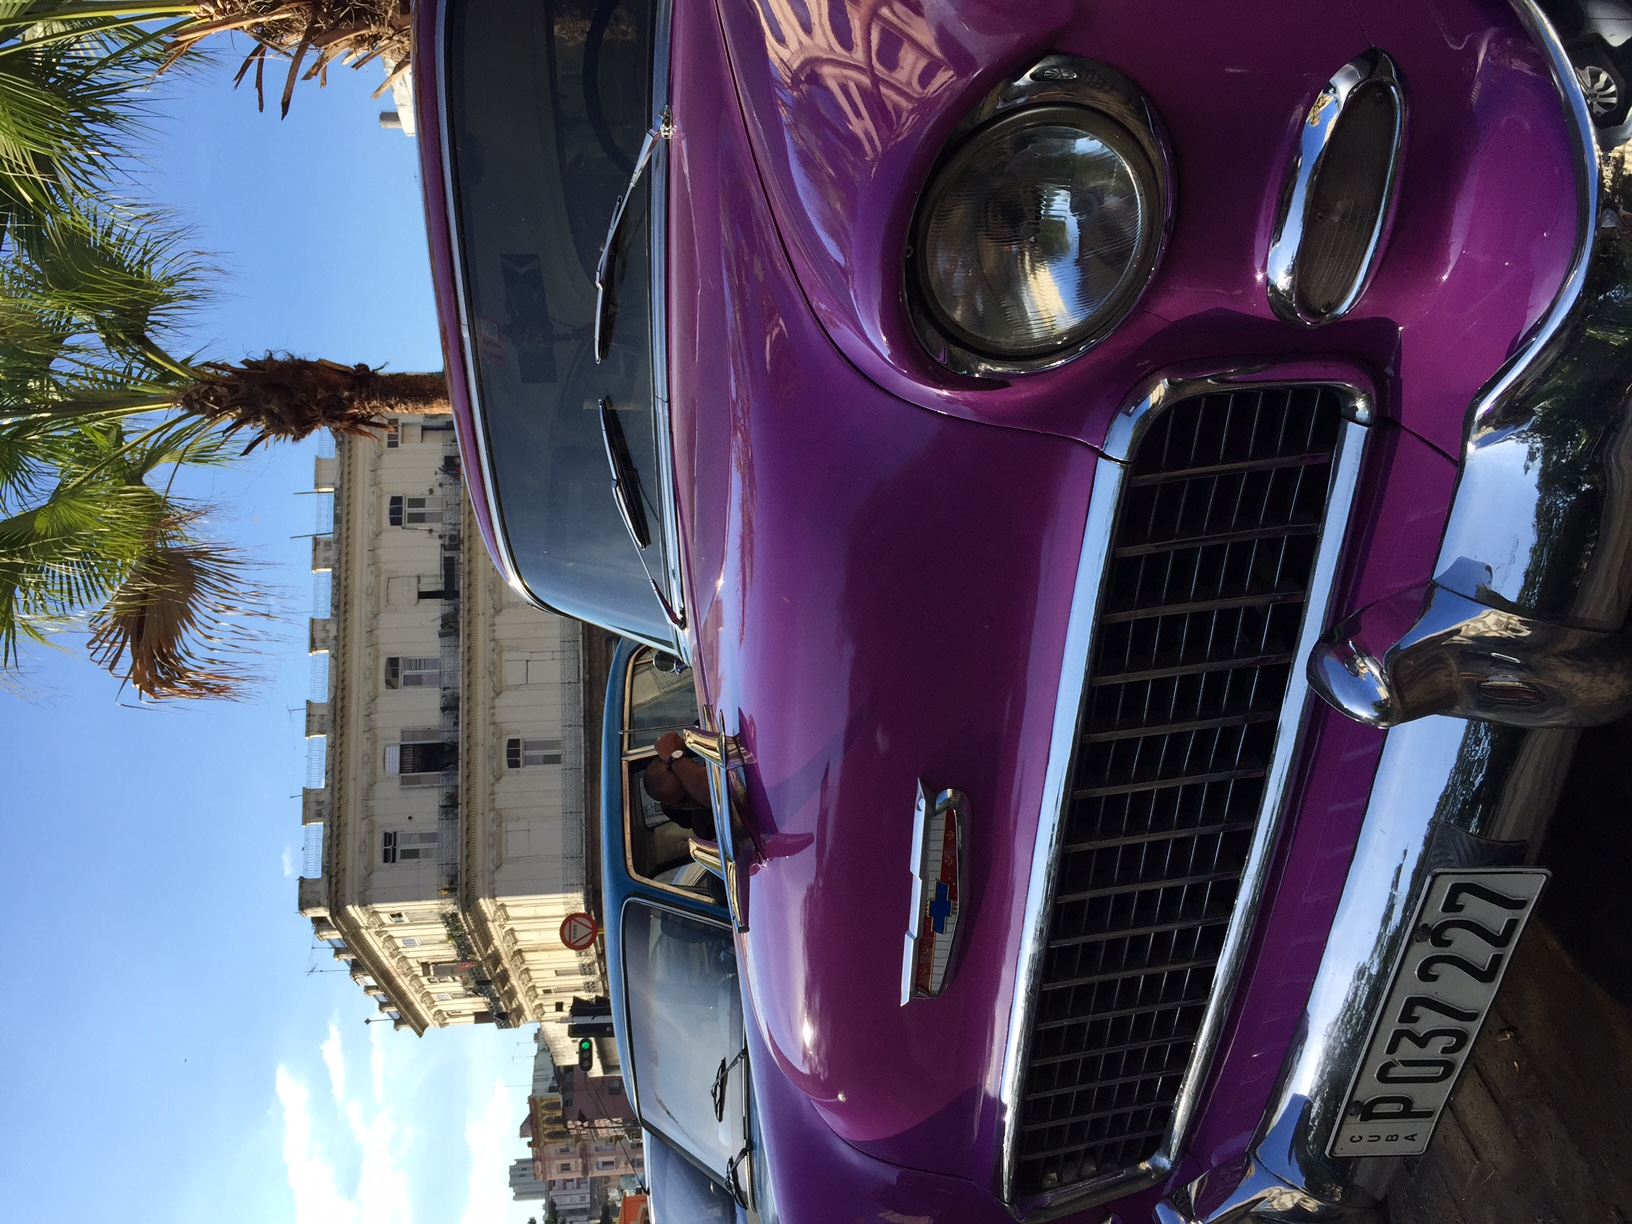 Classic cars parked by La Floridita hotel